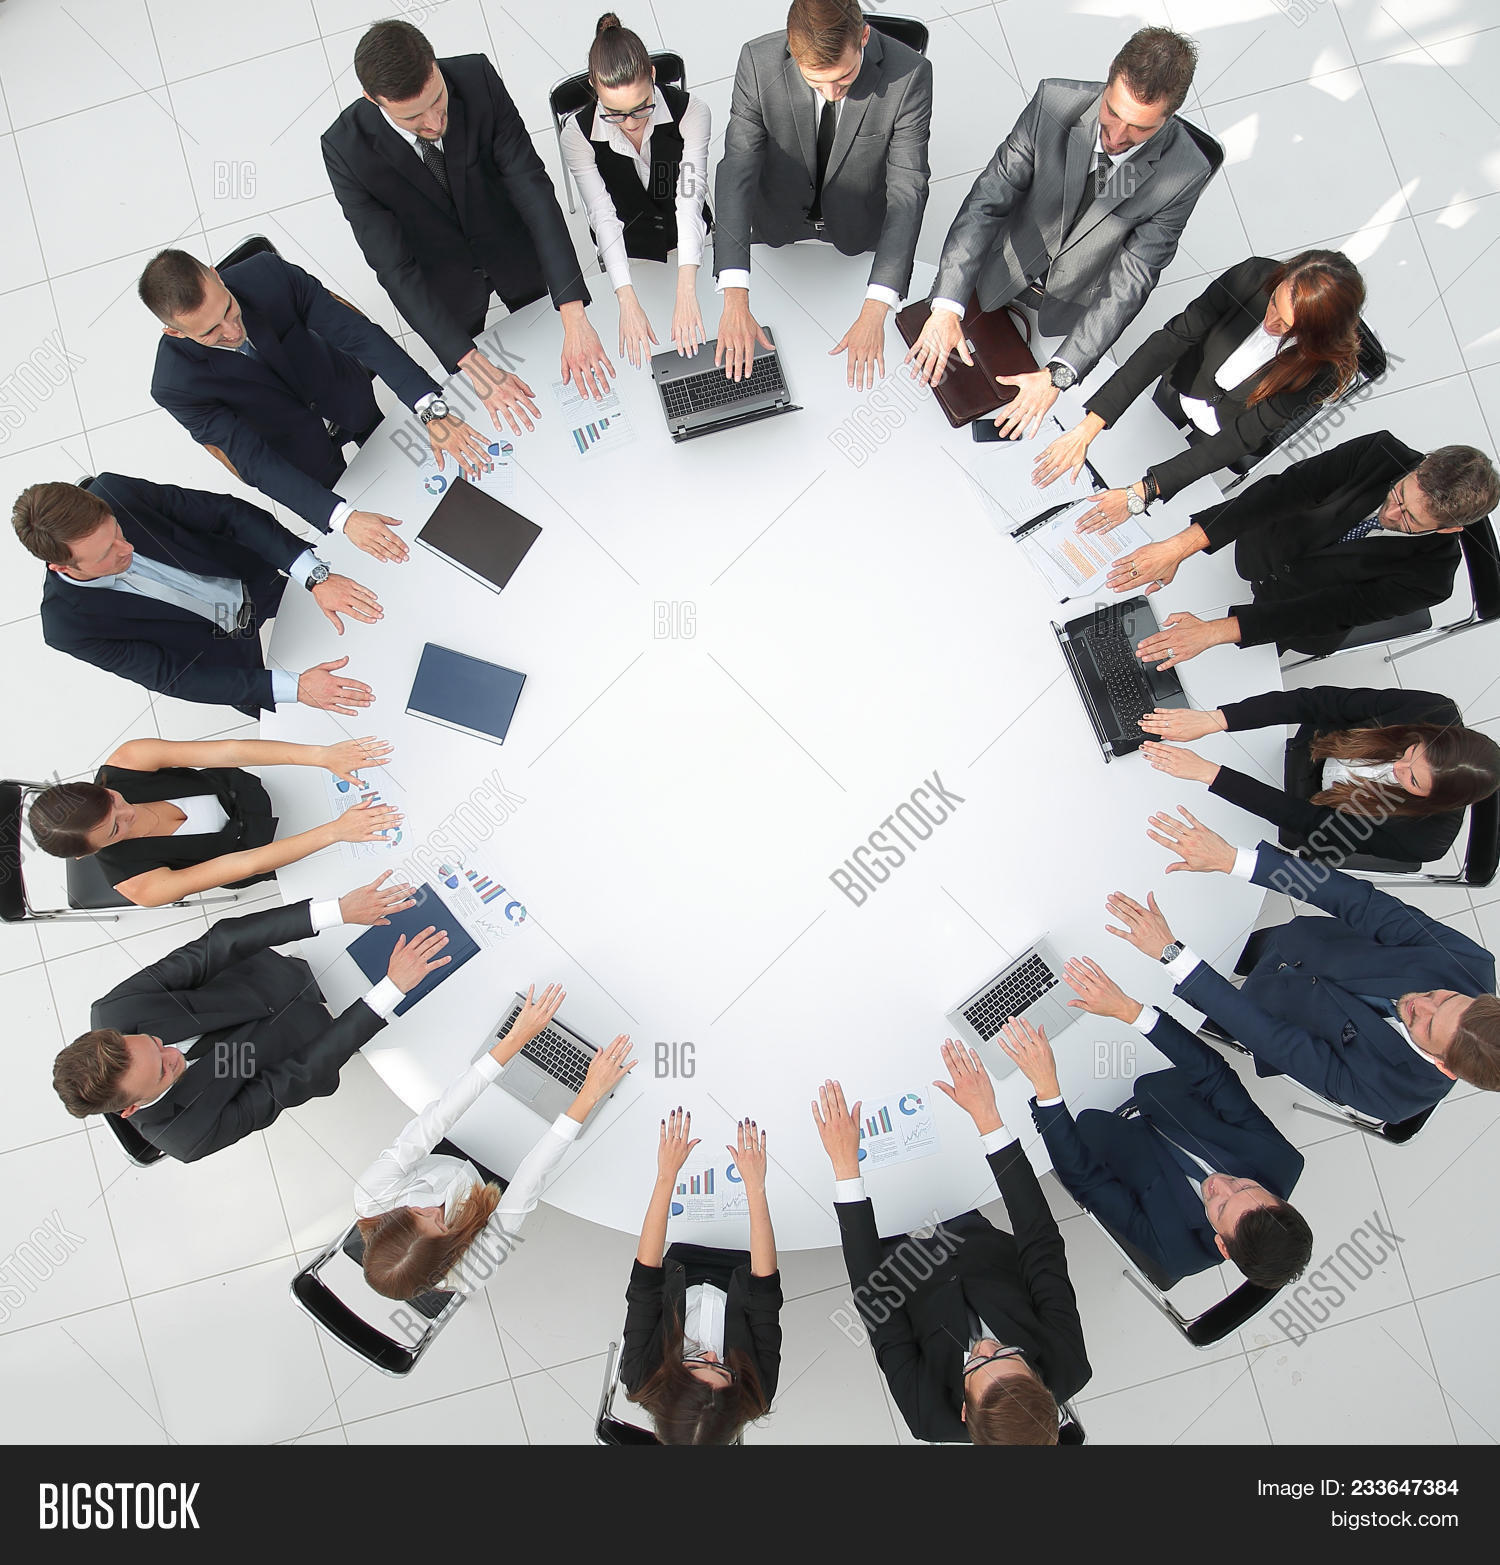 Group Business People Image & Photo (Free Trial) | Bigstock